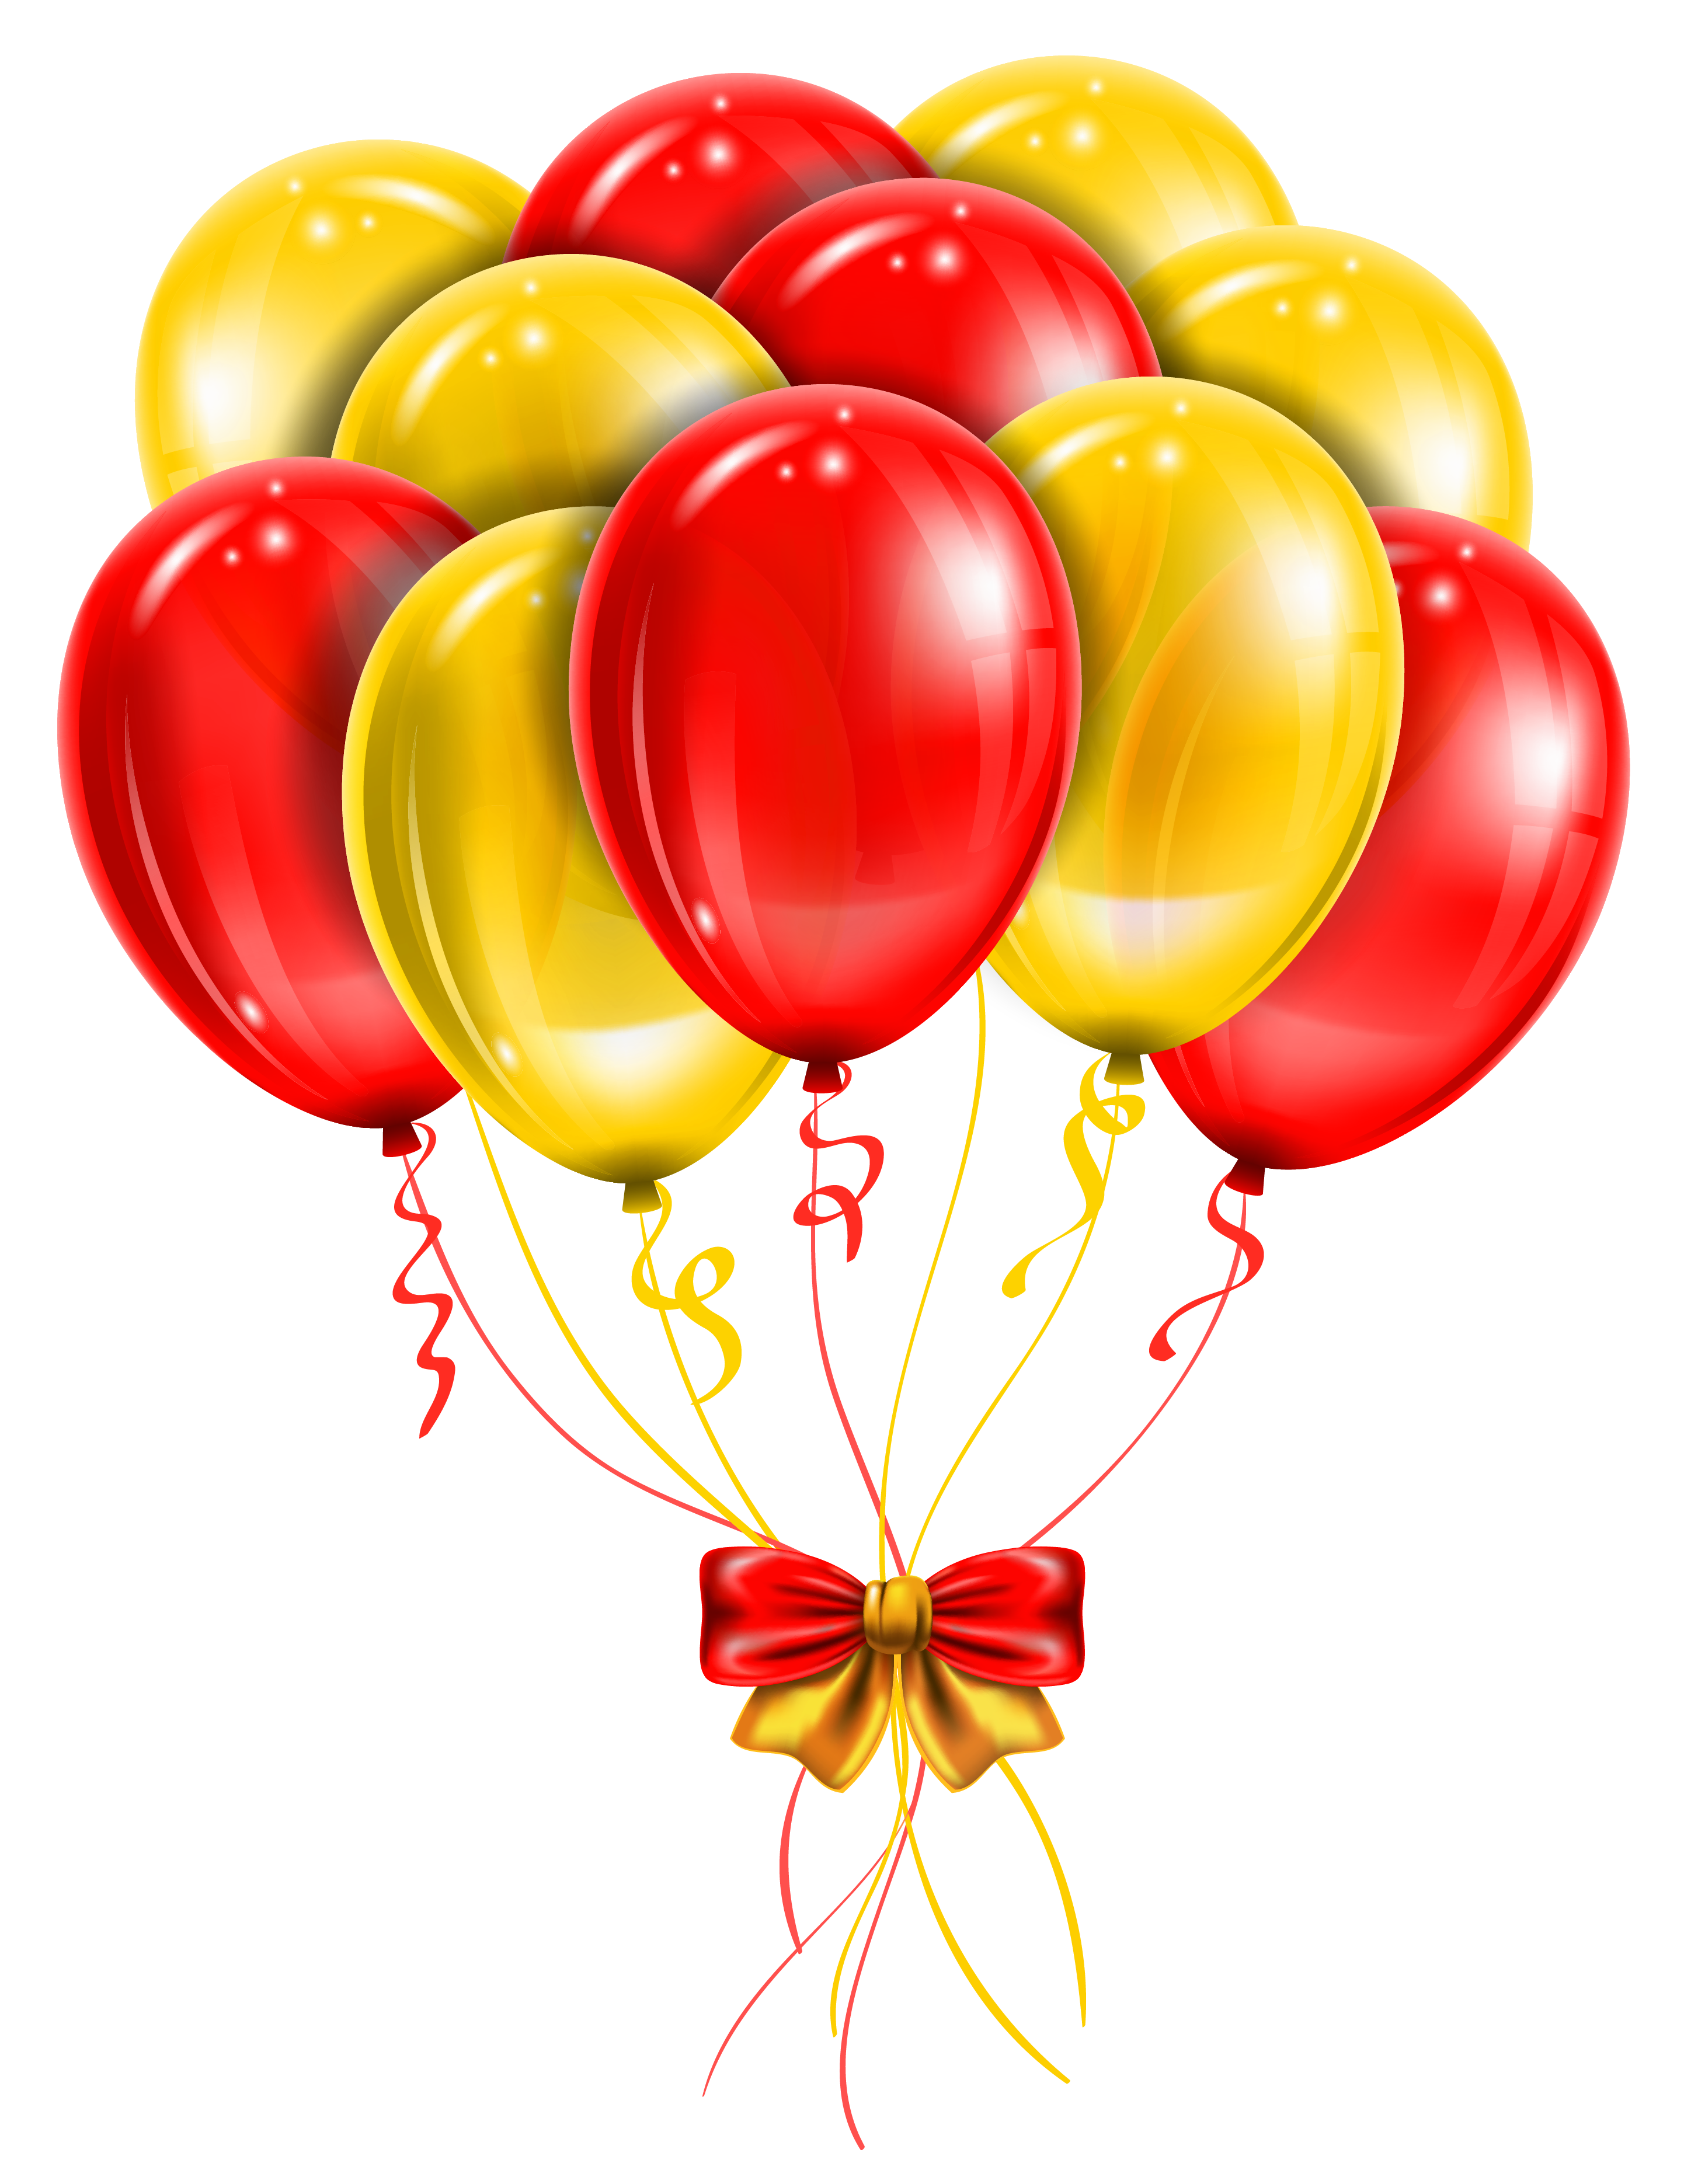 Yellow balloons png. Transparent red picture clipart